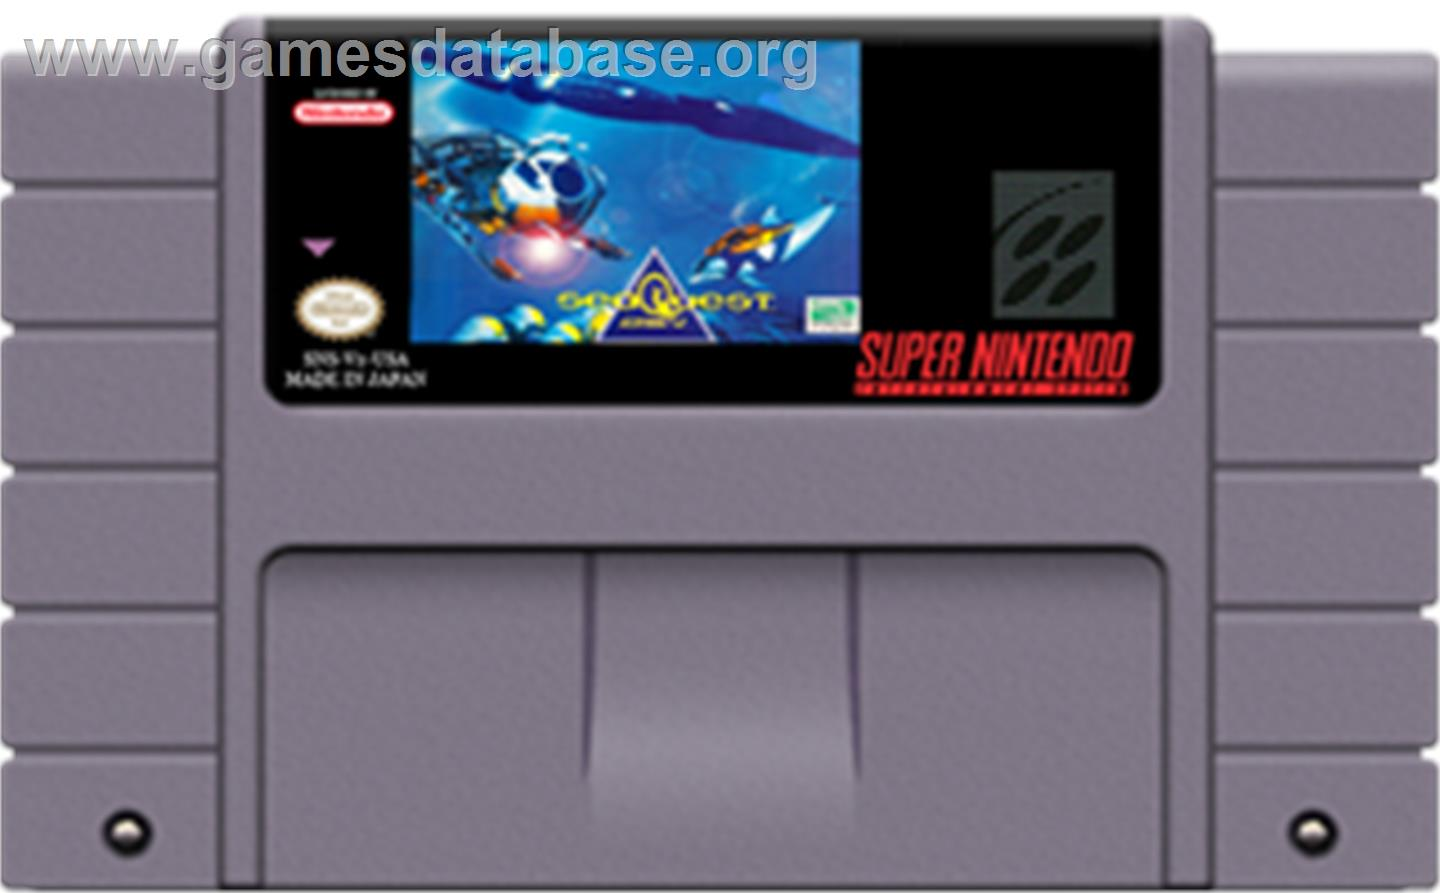 SeaQuest DSV - Nintendo SNES - Artwork - Cartridge